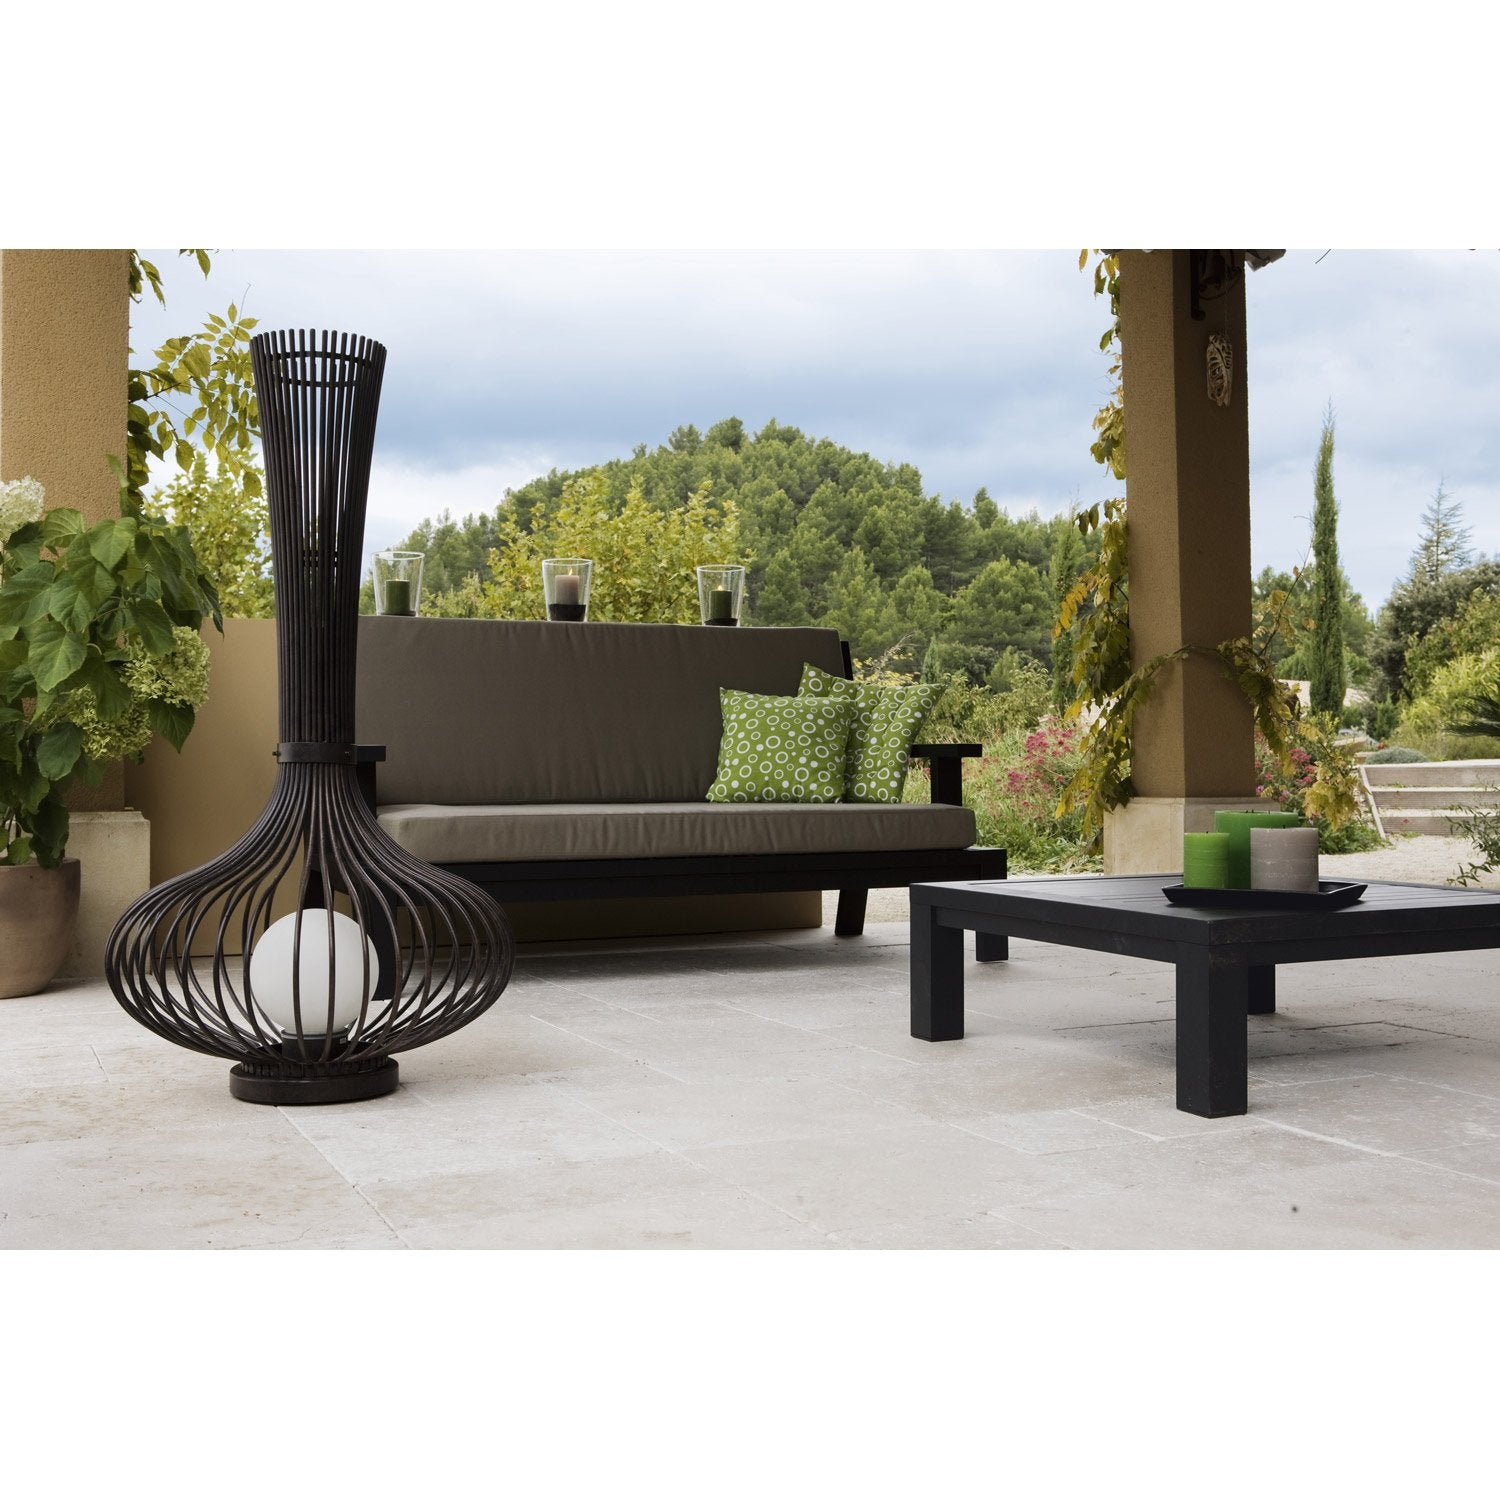 lampe de jardin ext rieure lorena e27 100 w brun eglo. Black Bedroom Furniture Sets. Home Design Ideas